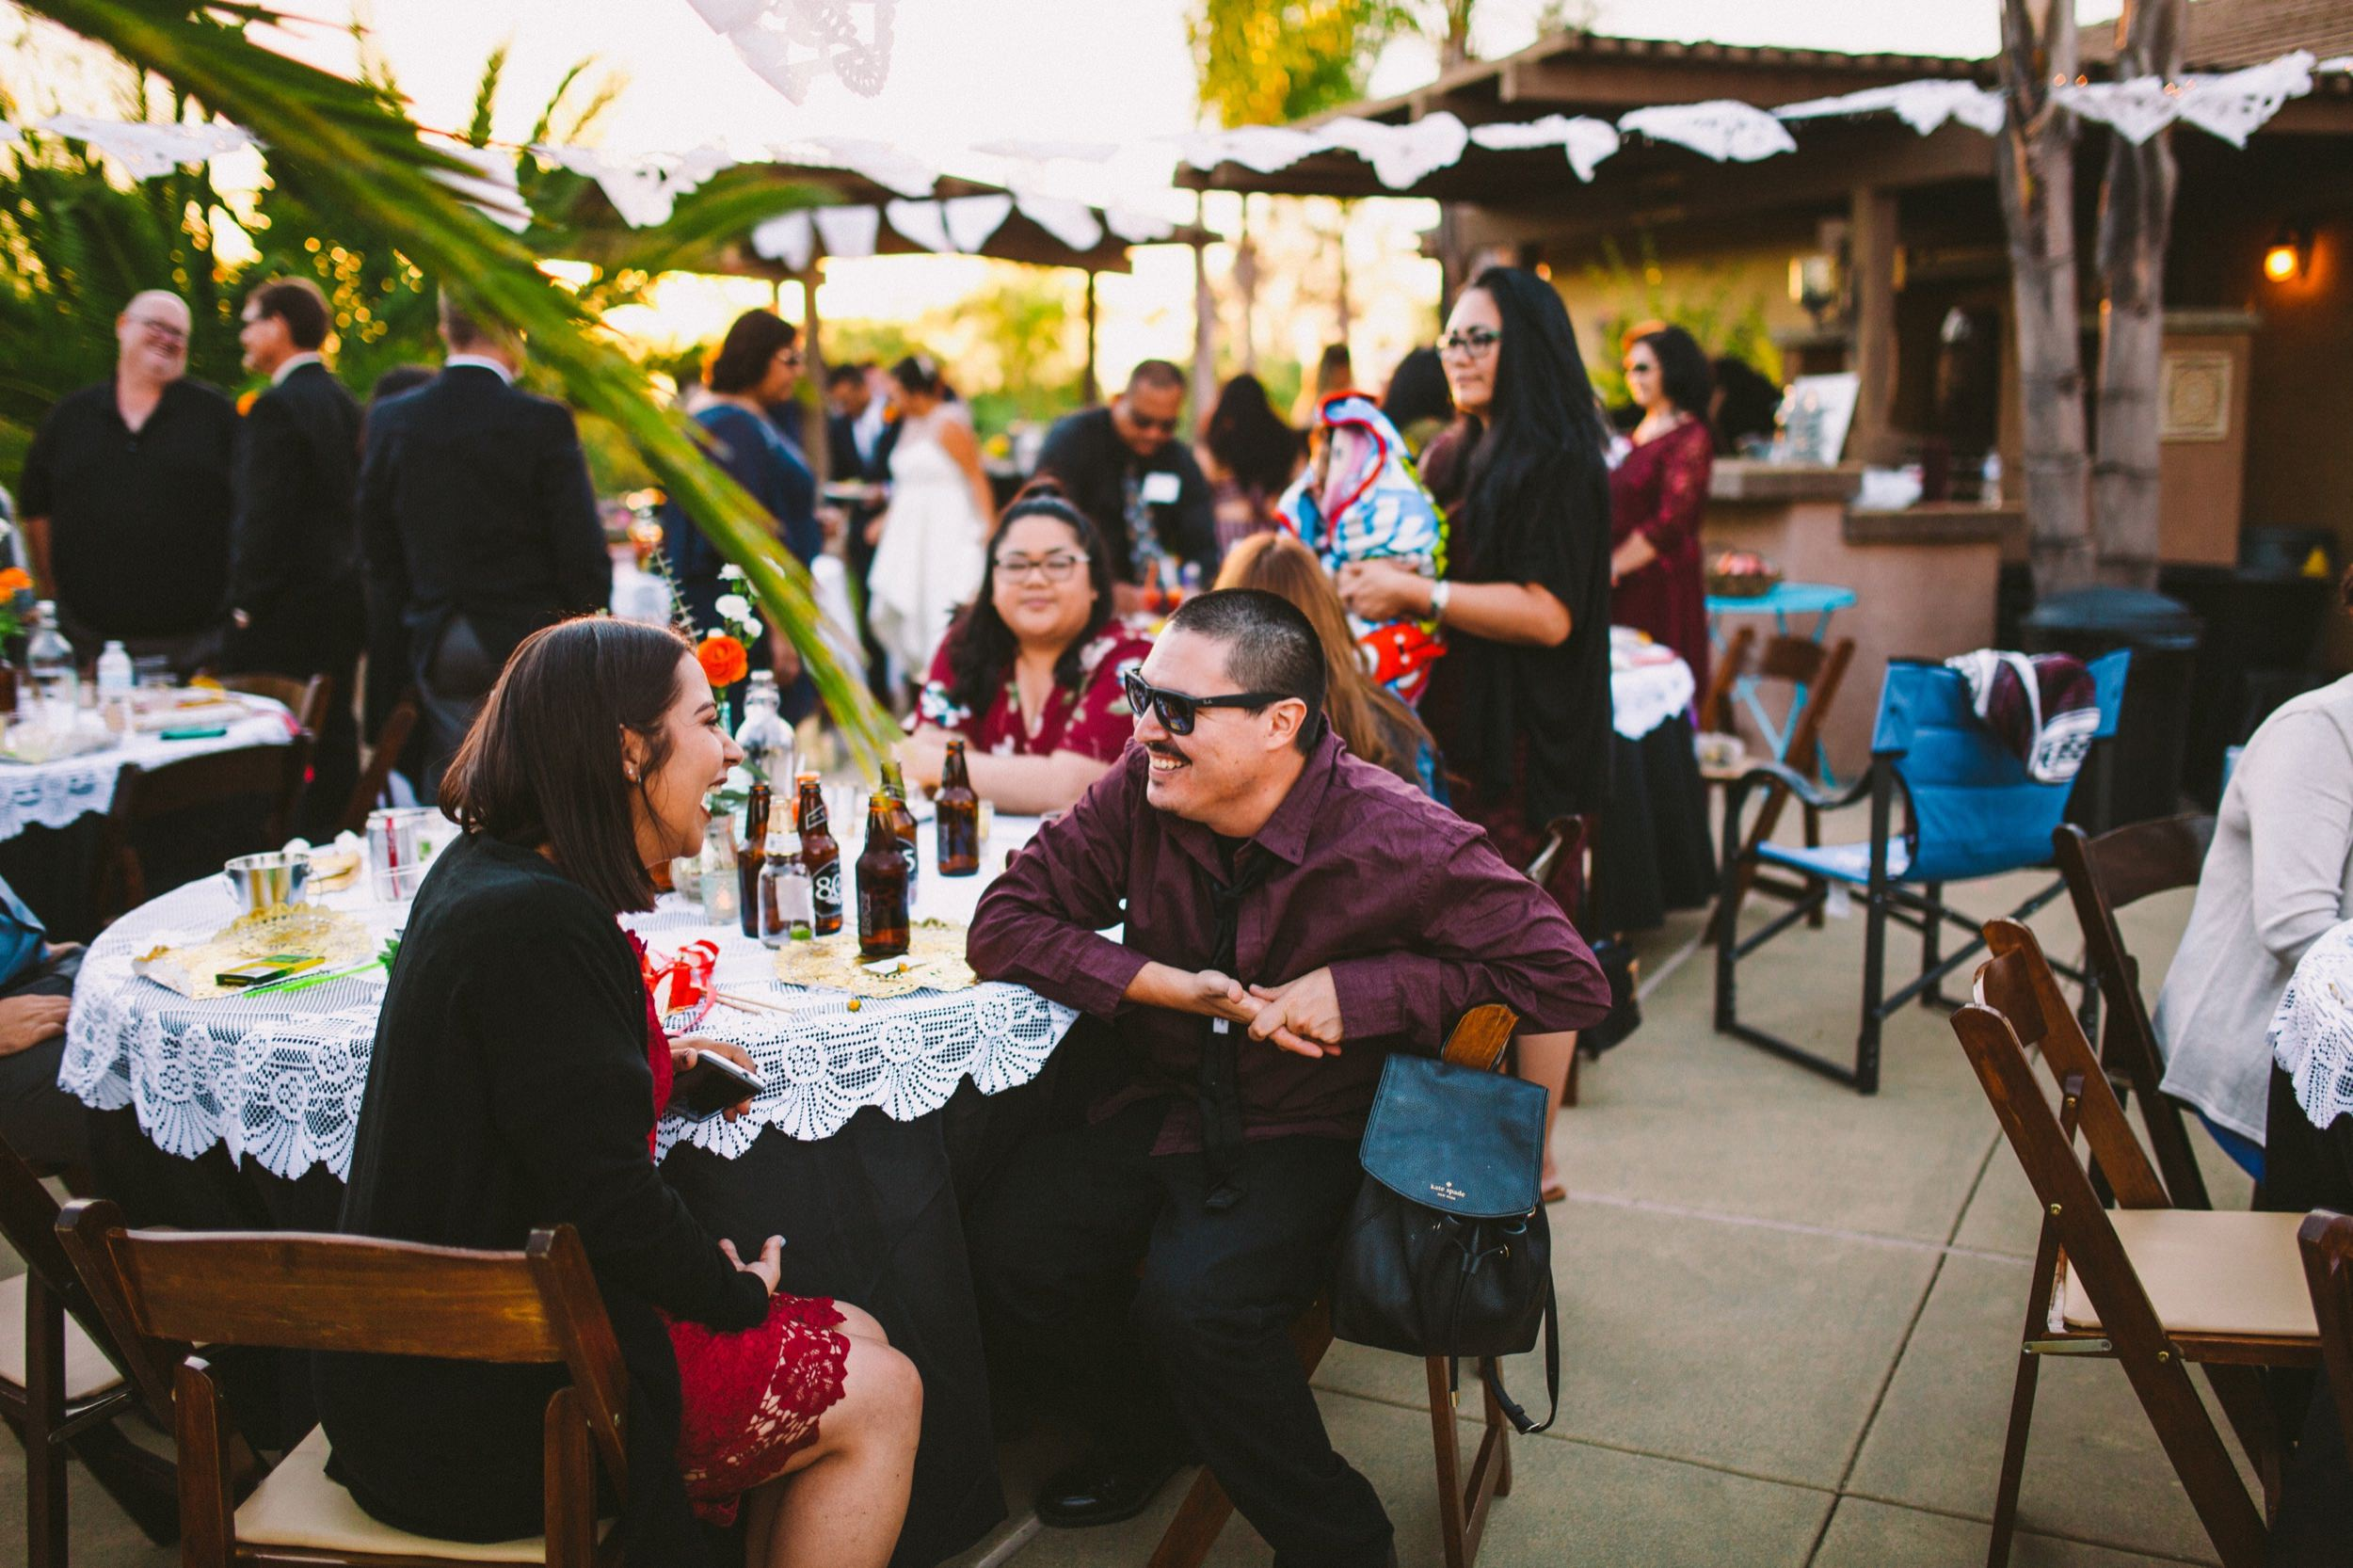 Intimate, Relaxed & Colorful Wedding Photography in Temecula-380.jpg